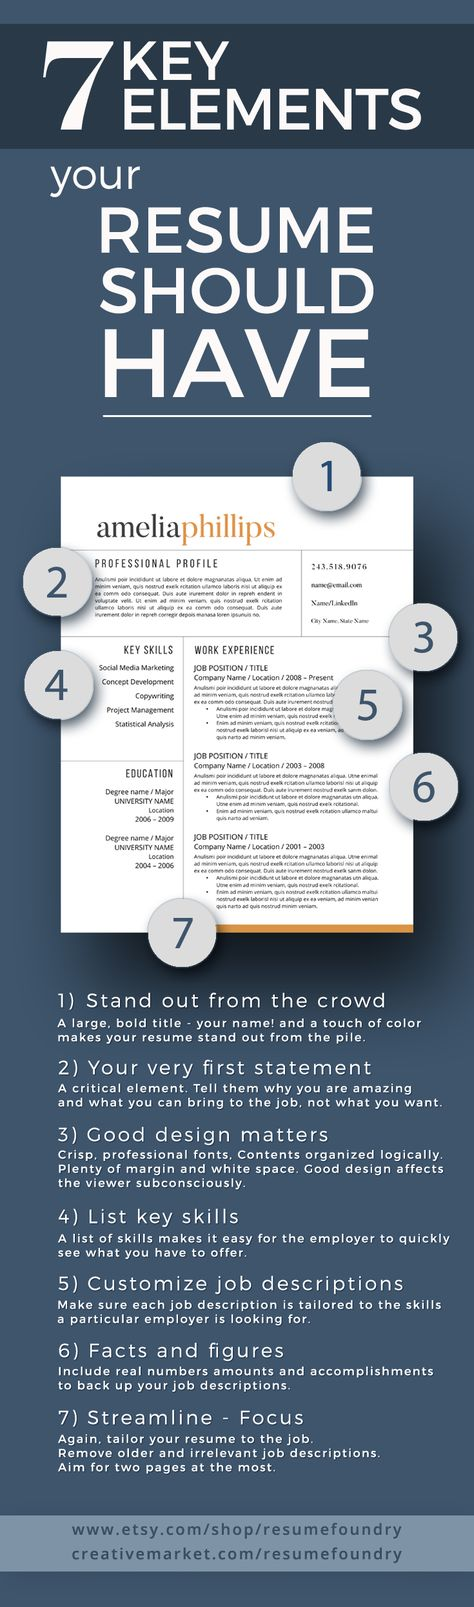 105 best Job Hunt images on Pinterest Gym, Resume ideas and - media sales assistant sample resume